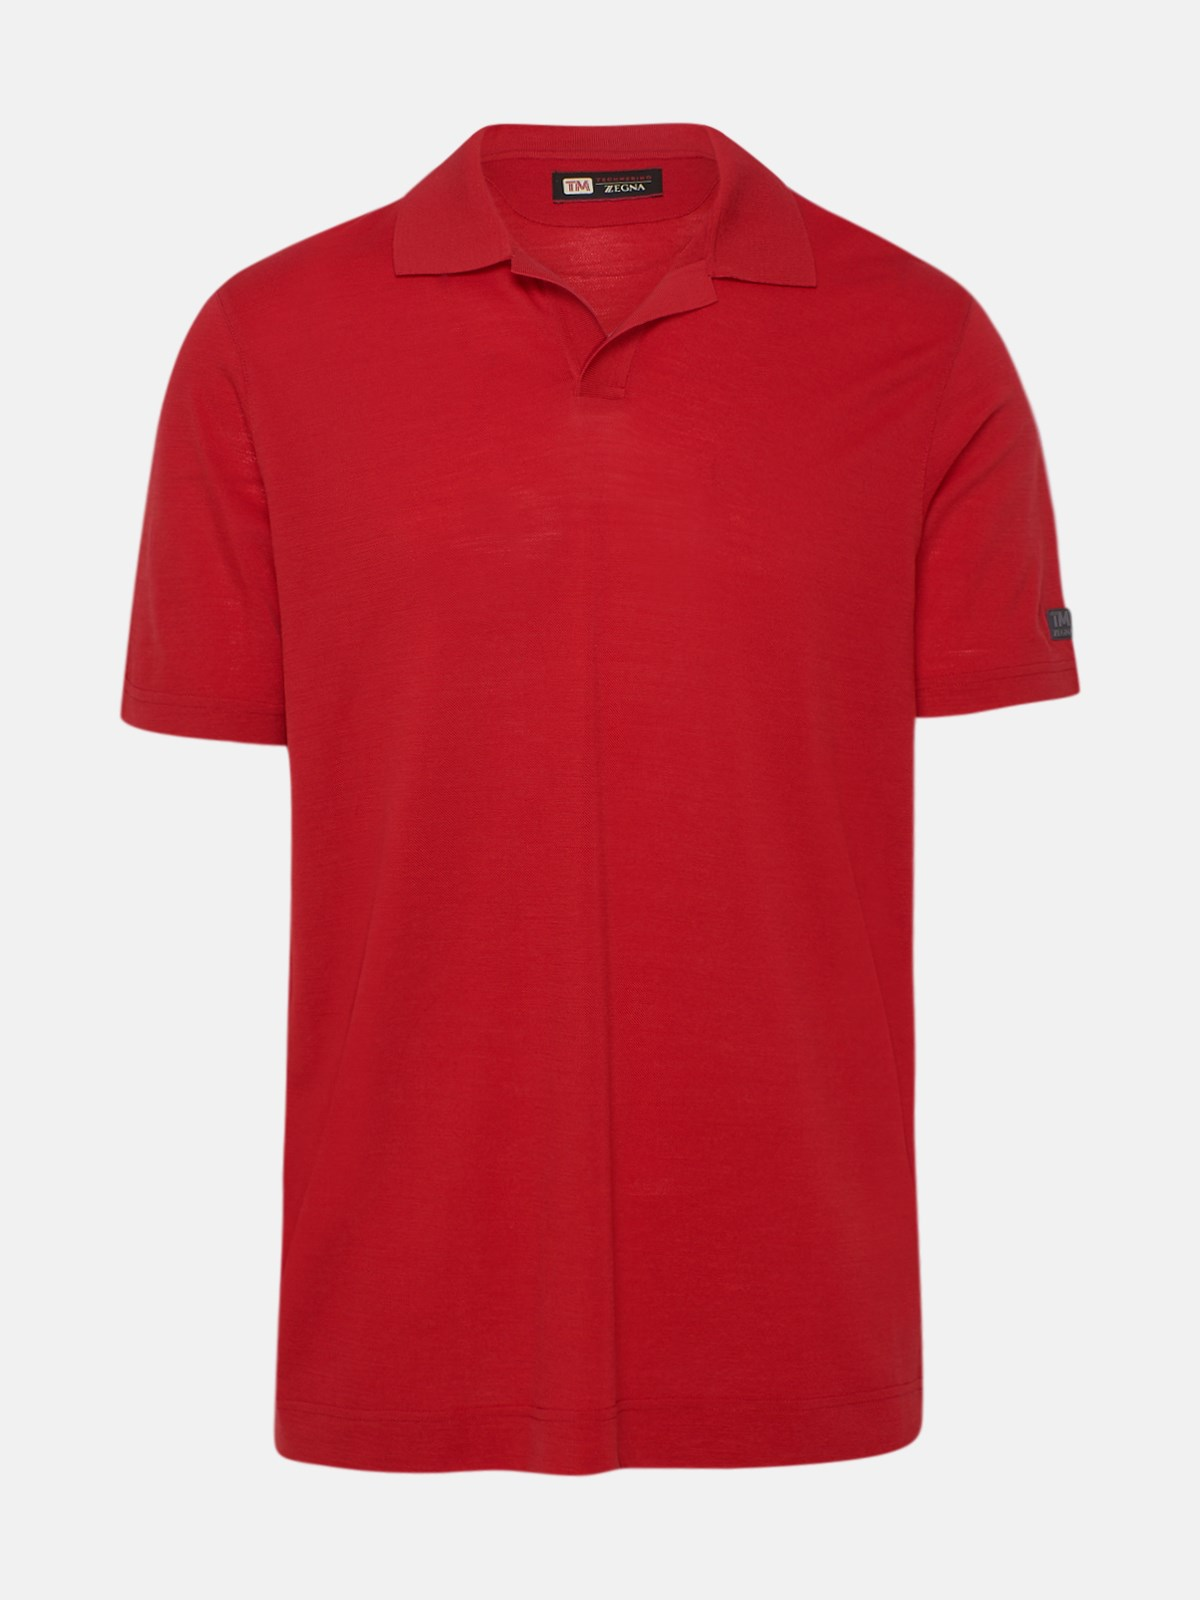 Z Zegna RED POLO SHIRT